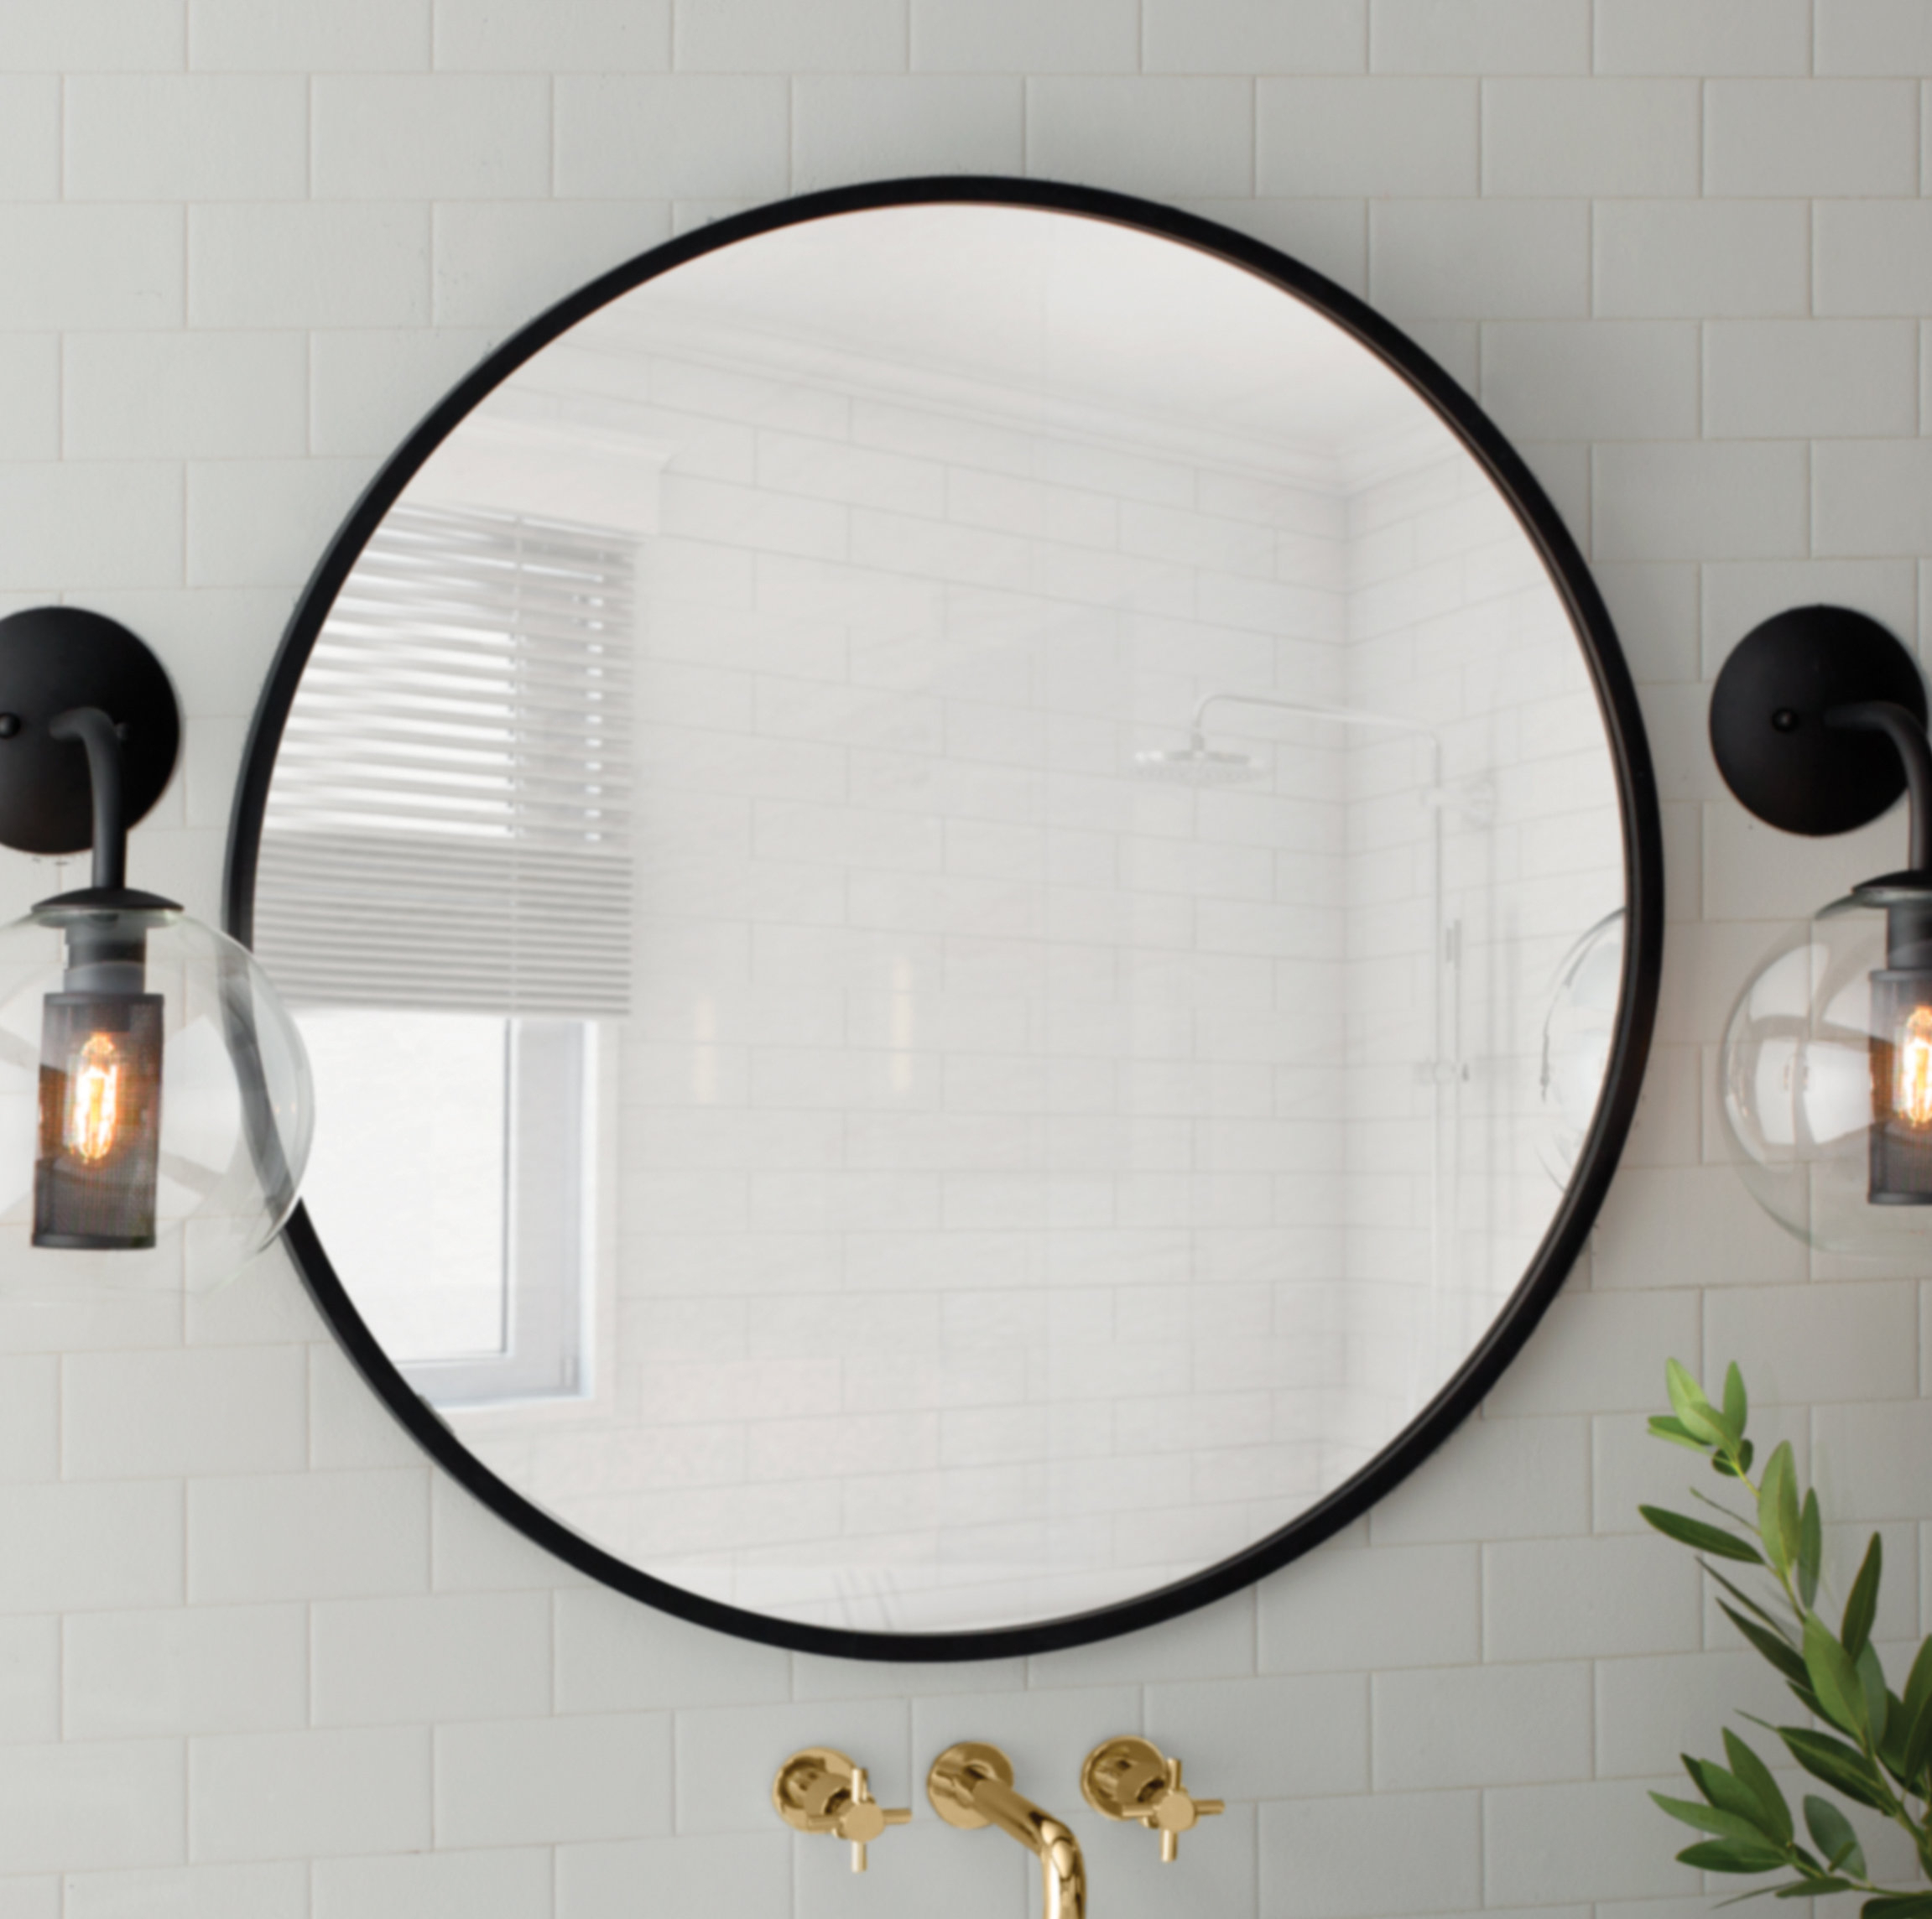 Hub Modern And Contemporary Accent Mirror Inside Hub Modern And Contemporary Accent Mirrors (Photo 1 of 20)